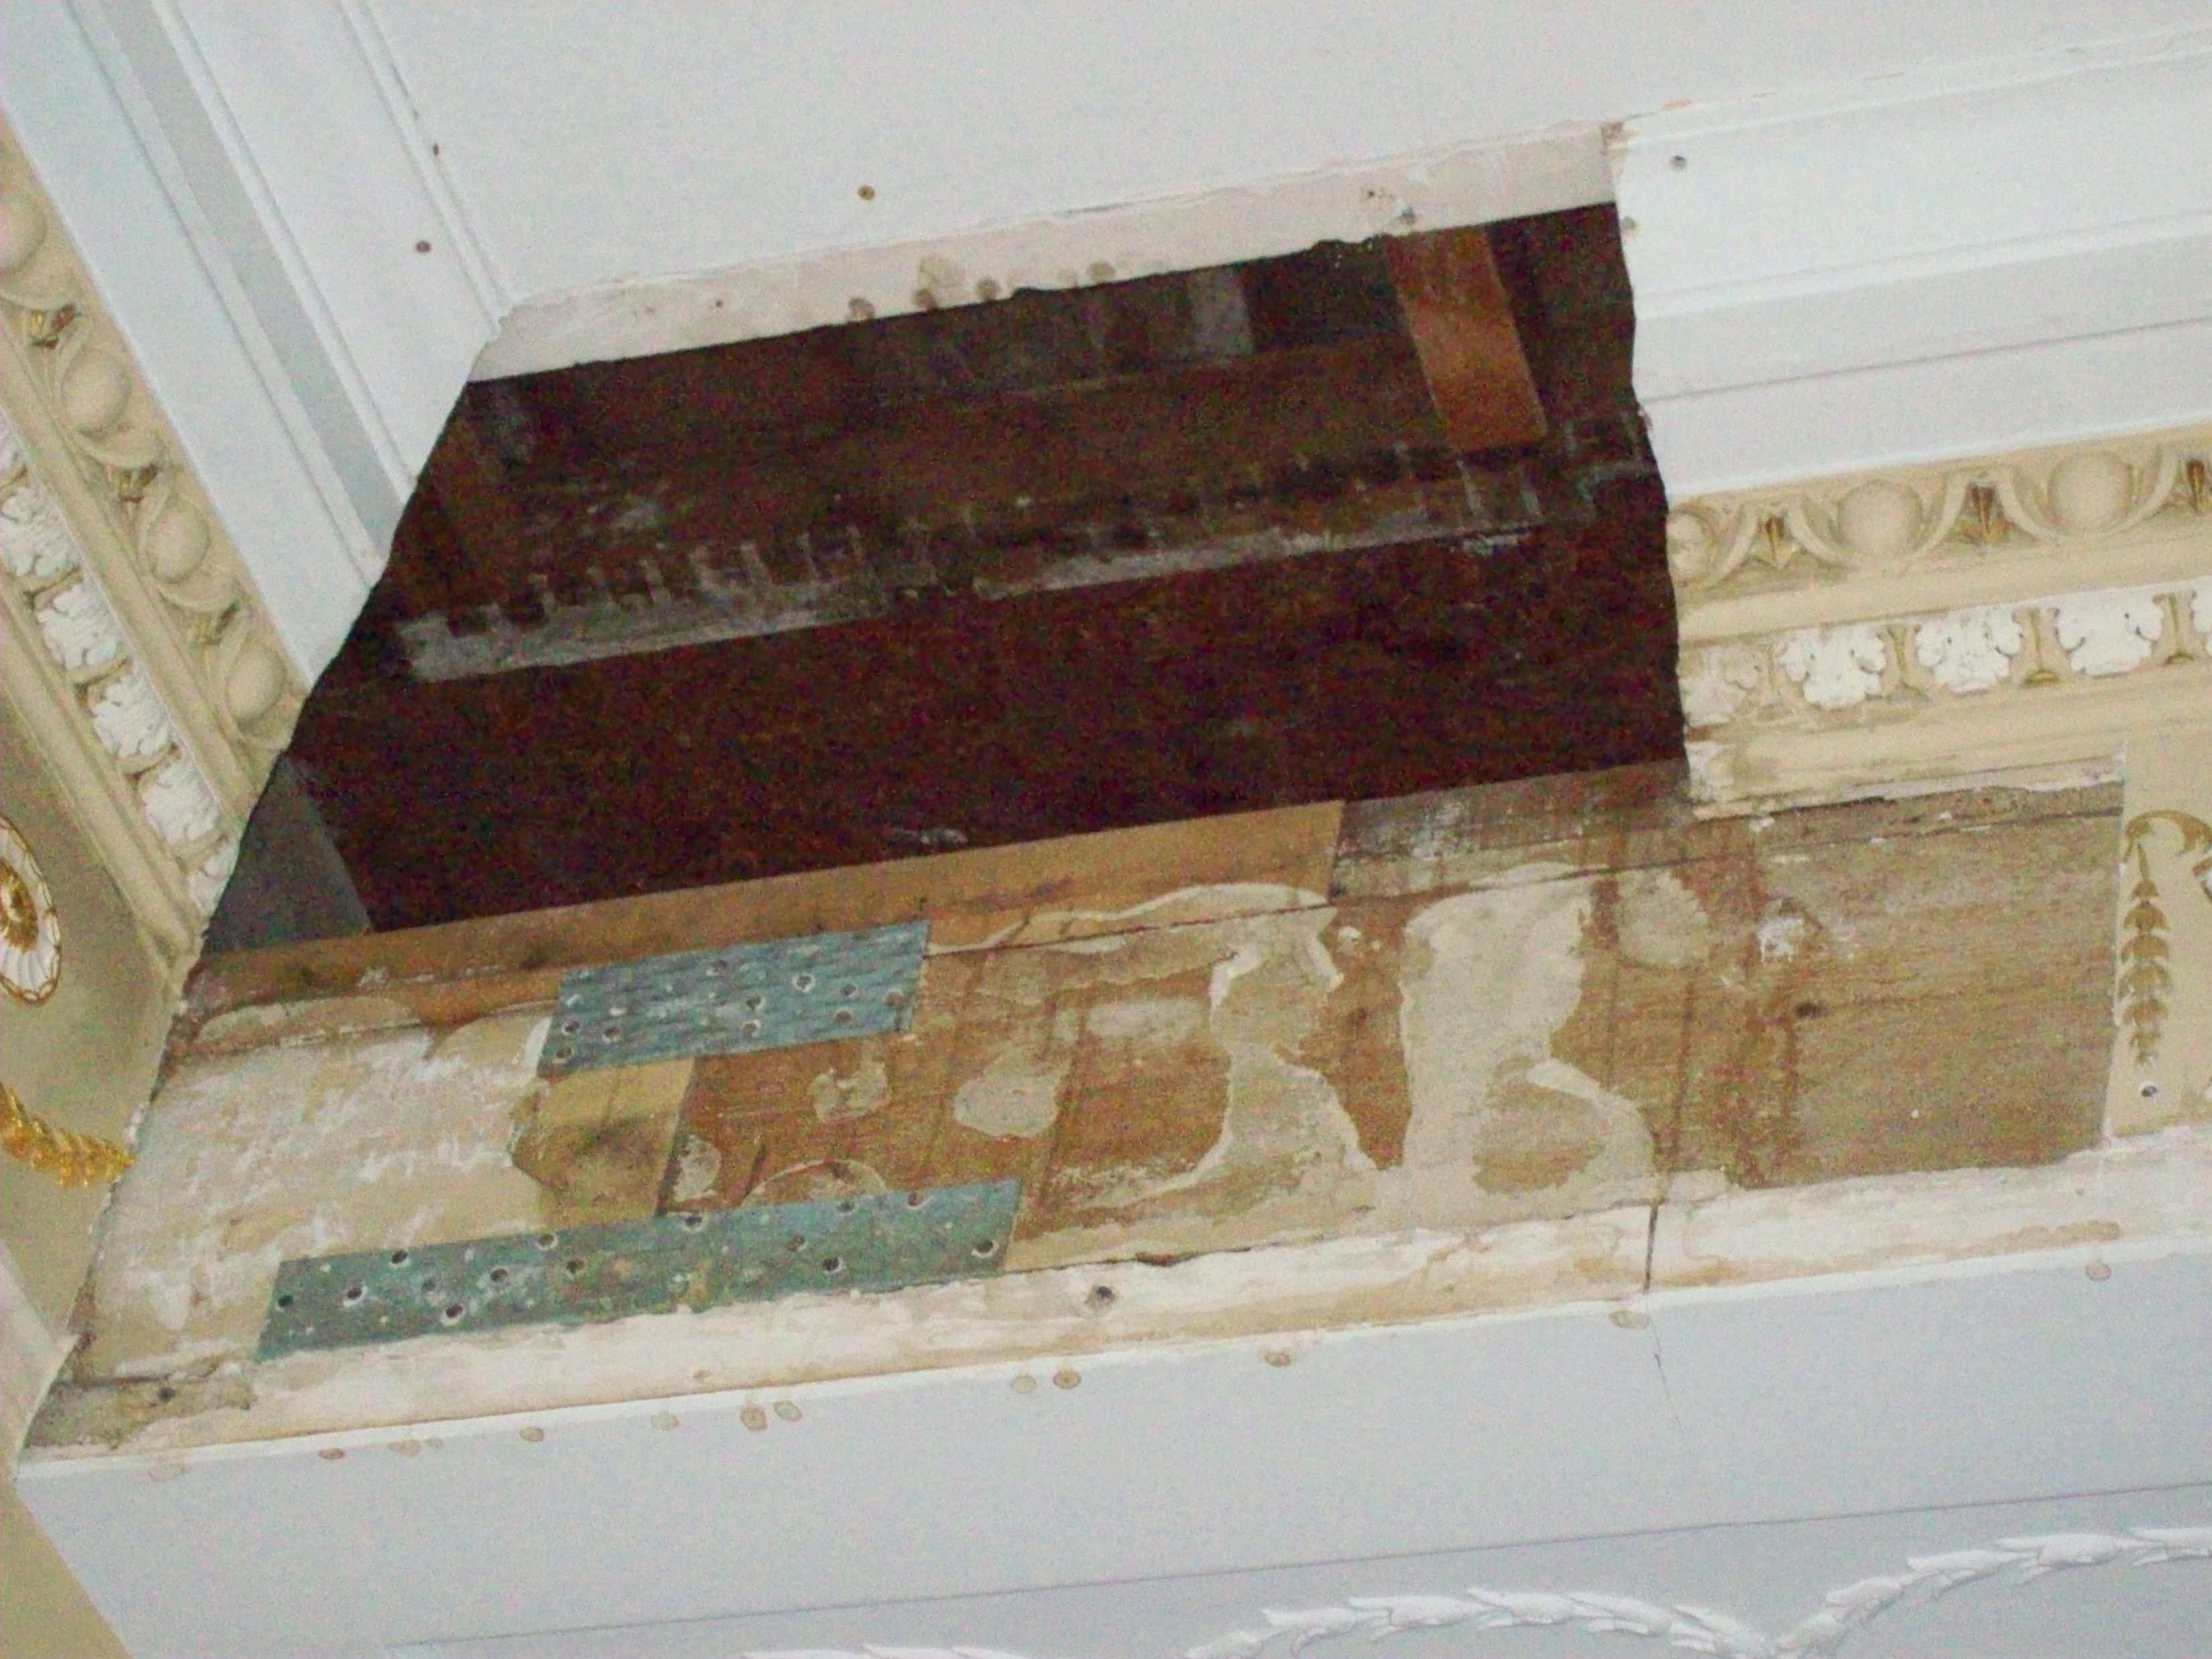 water damaged cornice and freize